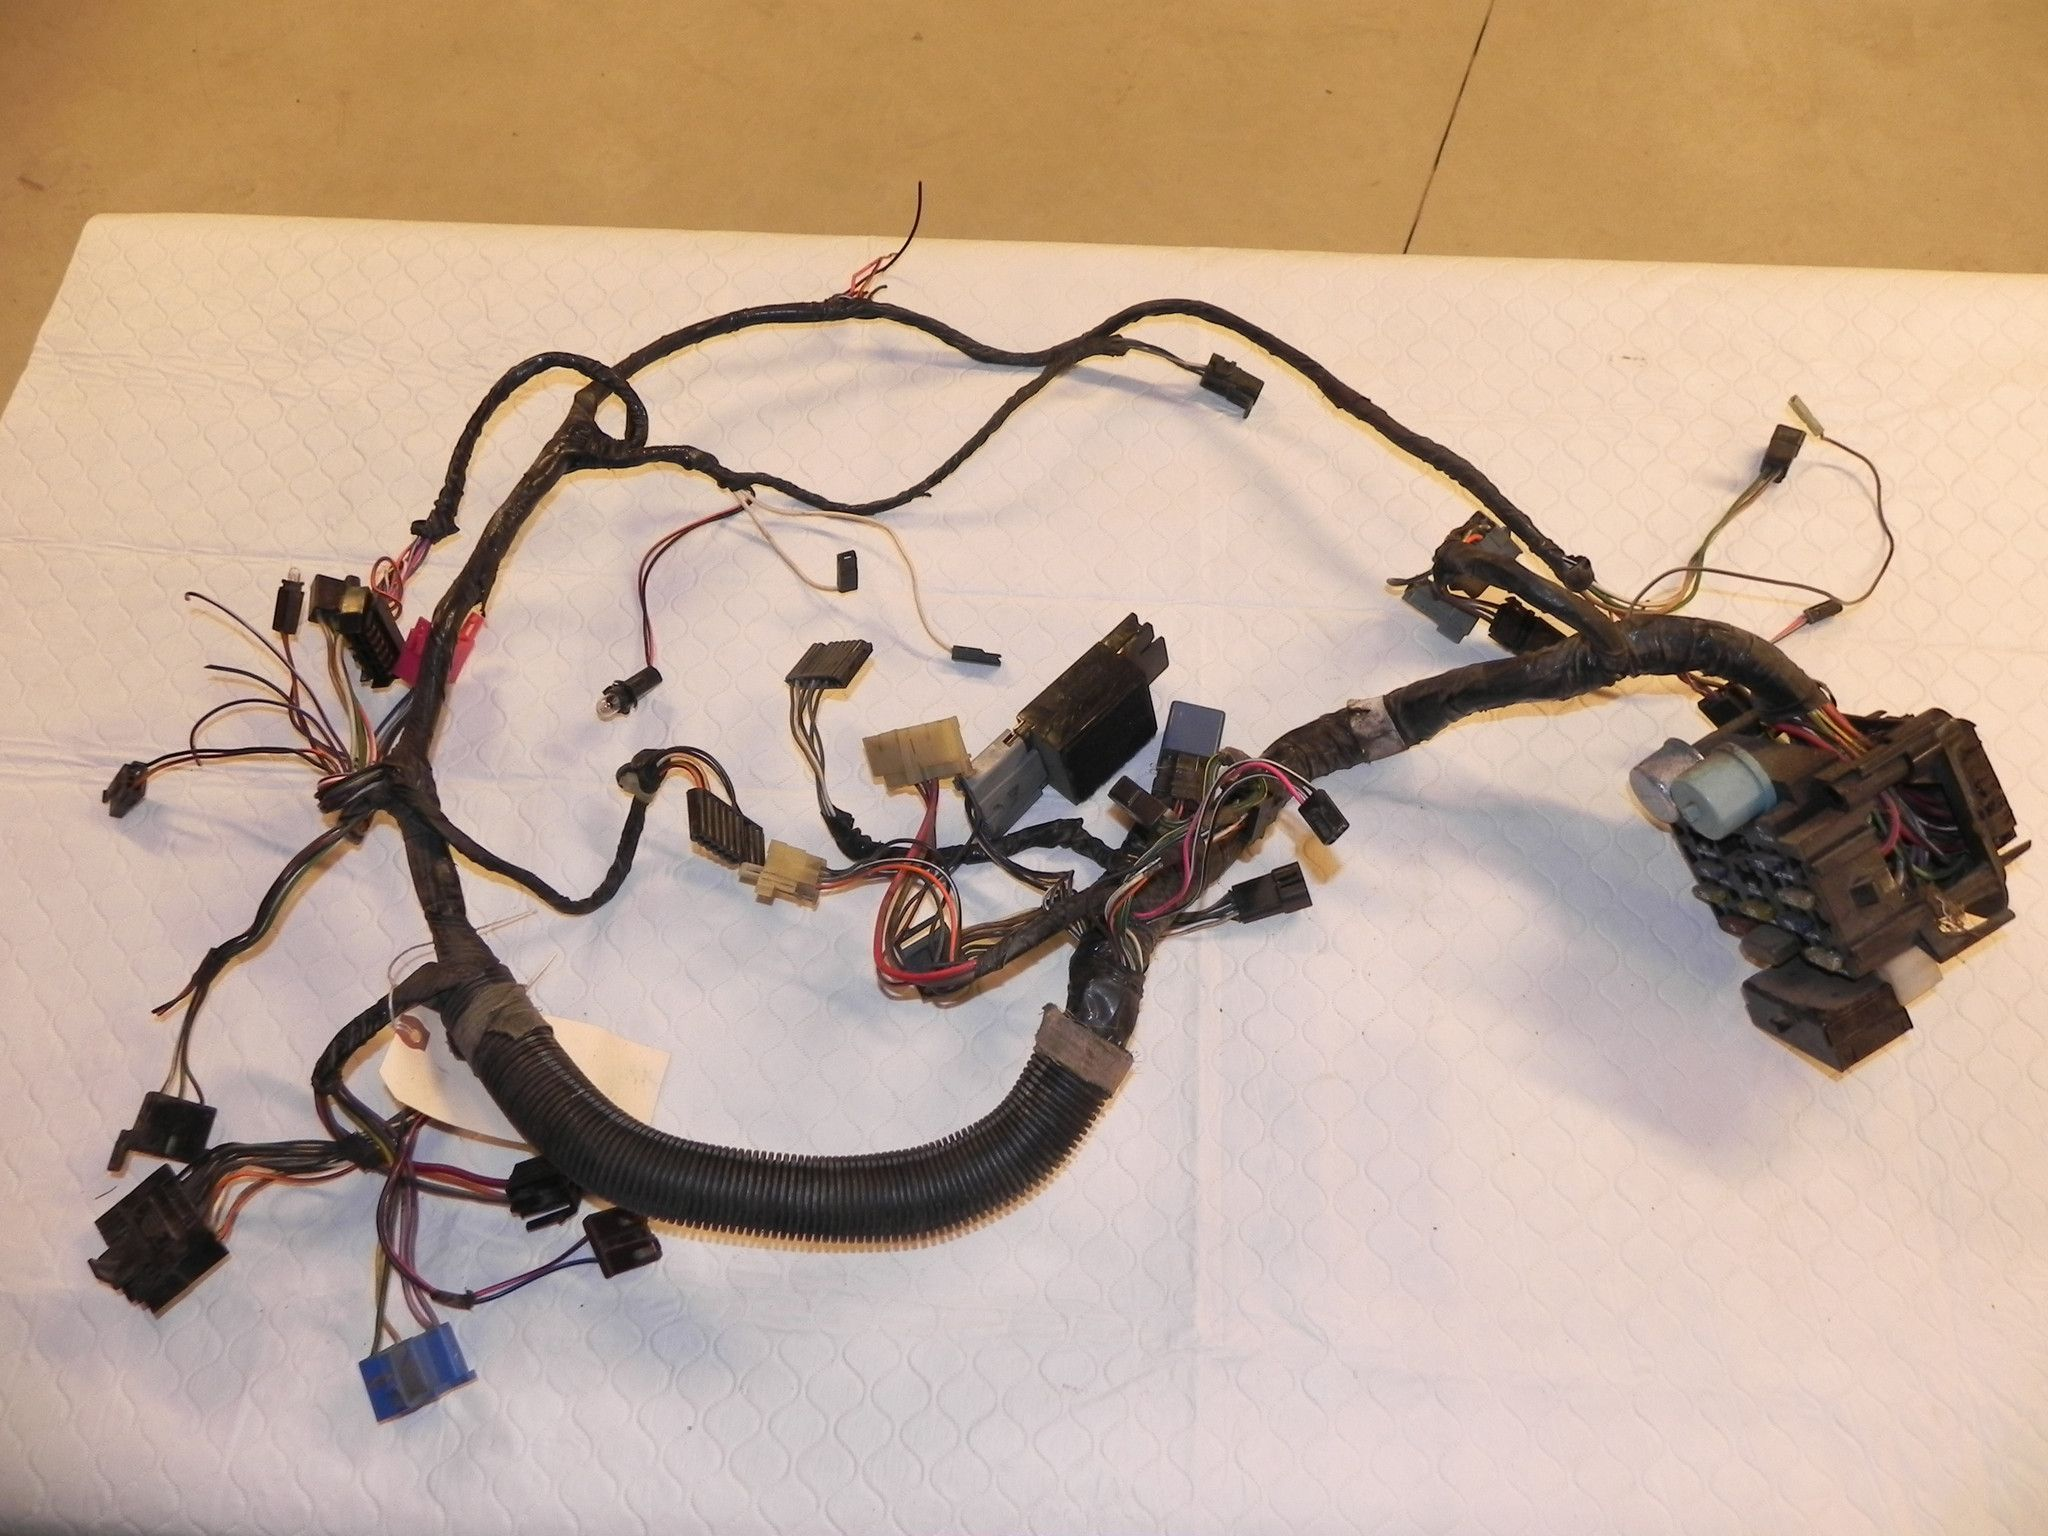 jeep wrangler yj under the dash wiring harness 1987 1991 parts only [ 2048 x 1536 Pixel ]